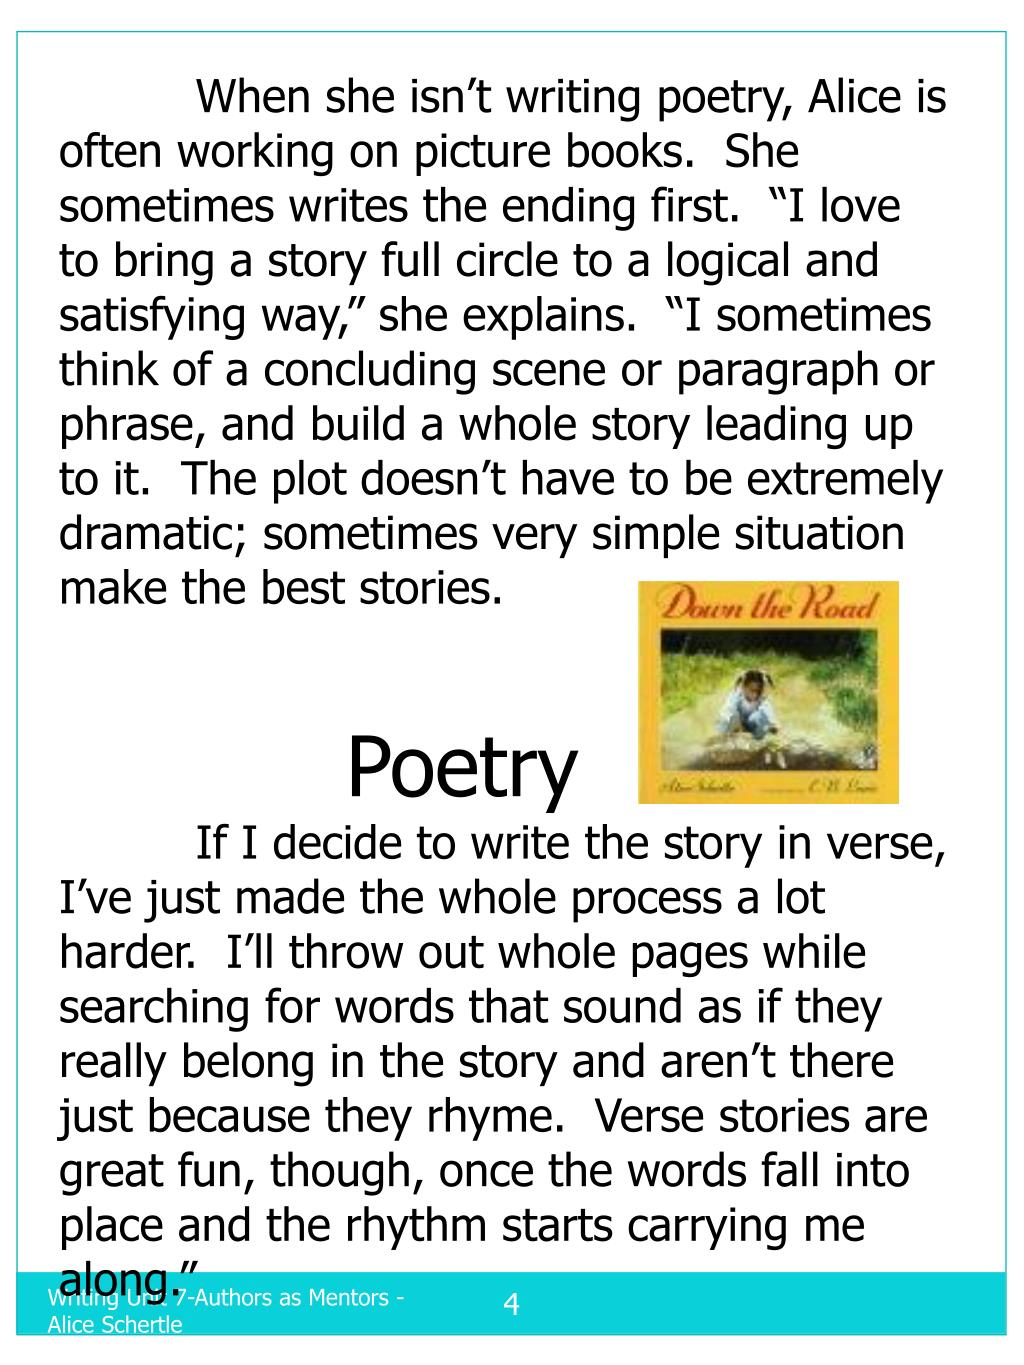 """When she isn't writing poetry, Alice is often working on picture books.  She sometimes writes the ending first.  """"I love to bring a story full circle to a logical and satisfying way,"""" she explains.  """"I sometimes think of a concluding scene or paragraph or phrase, and build a whole story leading up to it.  The plot doesn't have to be extremely dramatic; sometimes very simple situation make the best stories."""